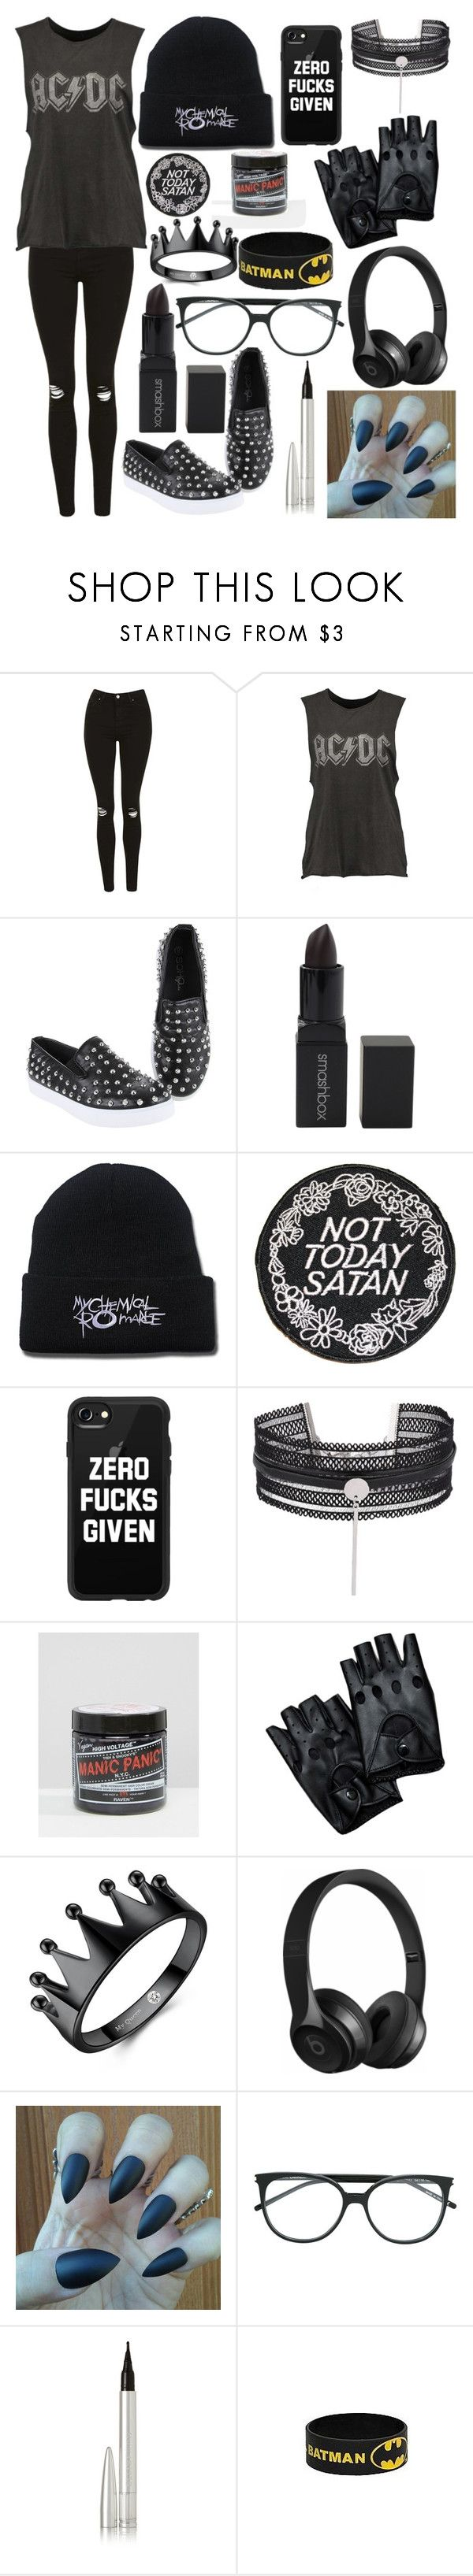 """Emo Tag #2"" by anamariarox ❤ liked on Polyvore featuring Topshop, Hot Topic, Smashbox, Rupaul, Casetify, Manic Panic NYC, Beats by Dr. Dre, Yves Saint Laurent and Ellis Faas"